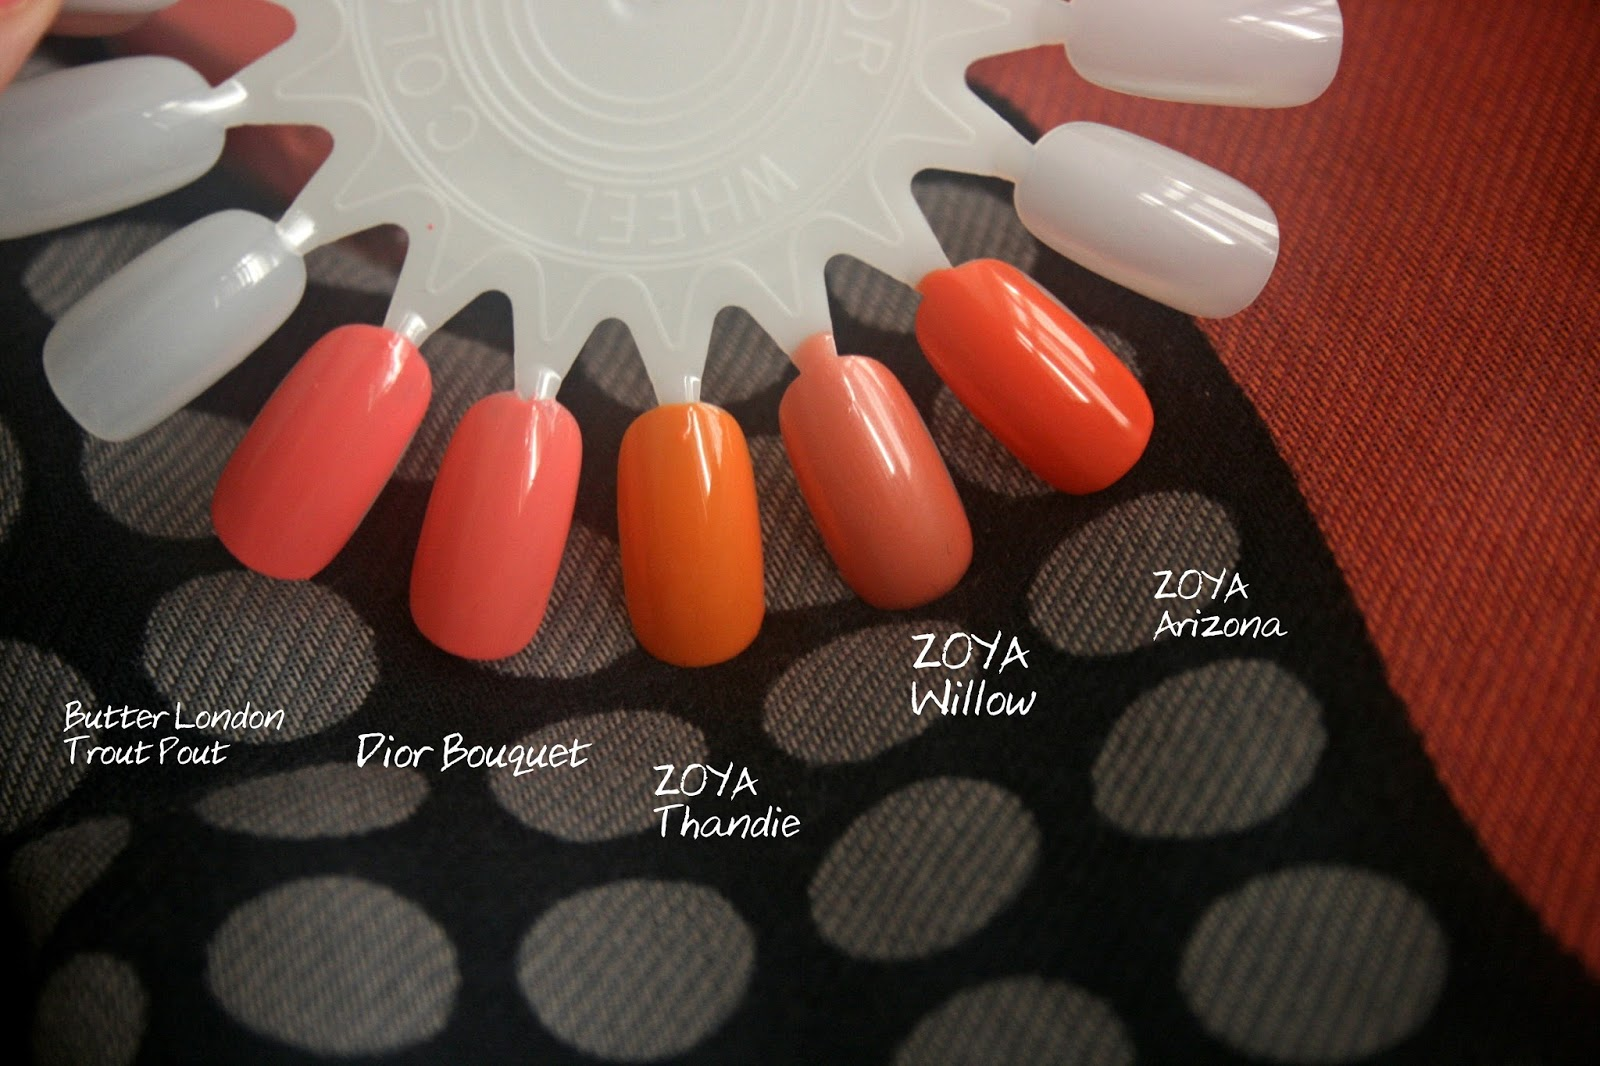 Dior Bouquet Comparison Swatches to Butter london trout pout zoya thandie zoya willow zoya arizona